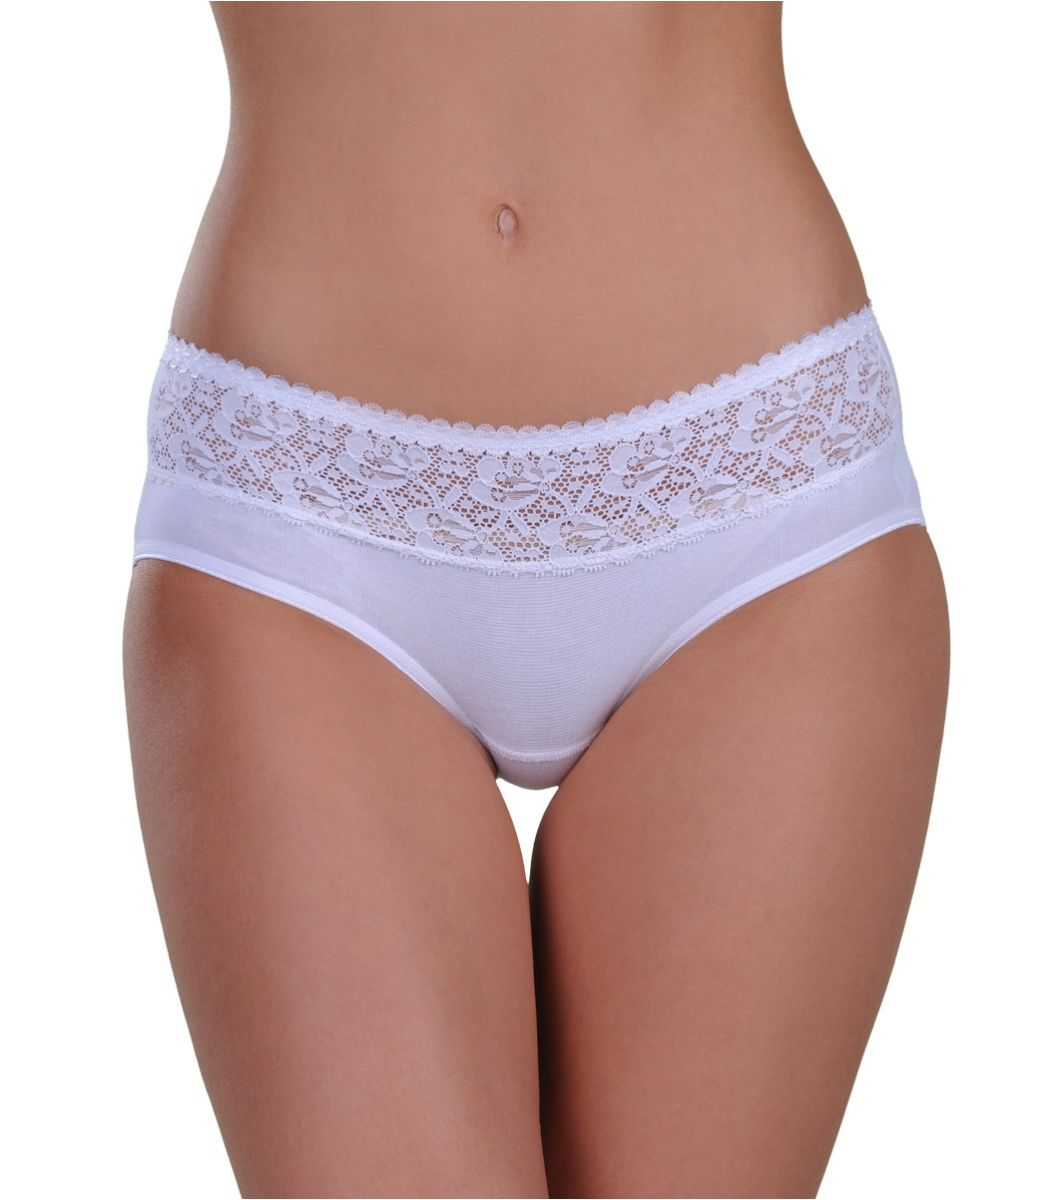 Panty midi, double lace, white